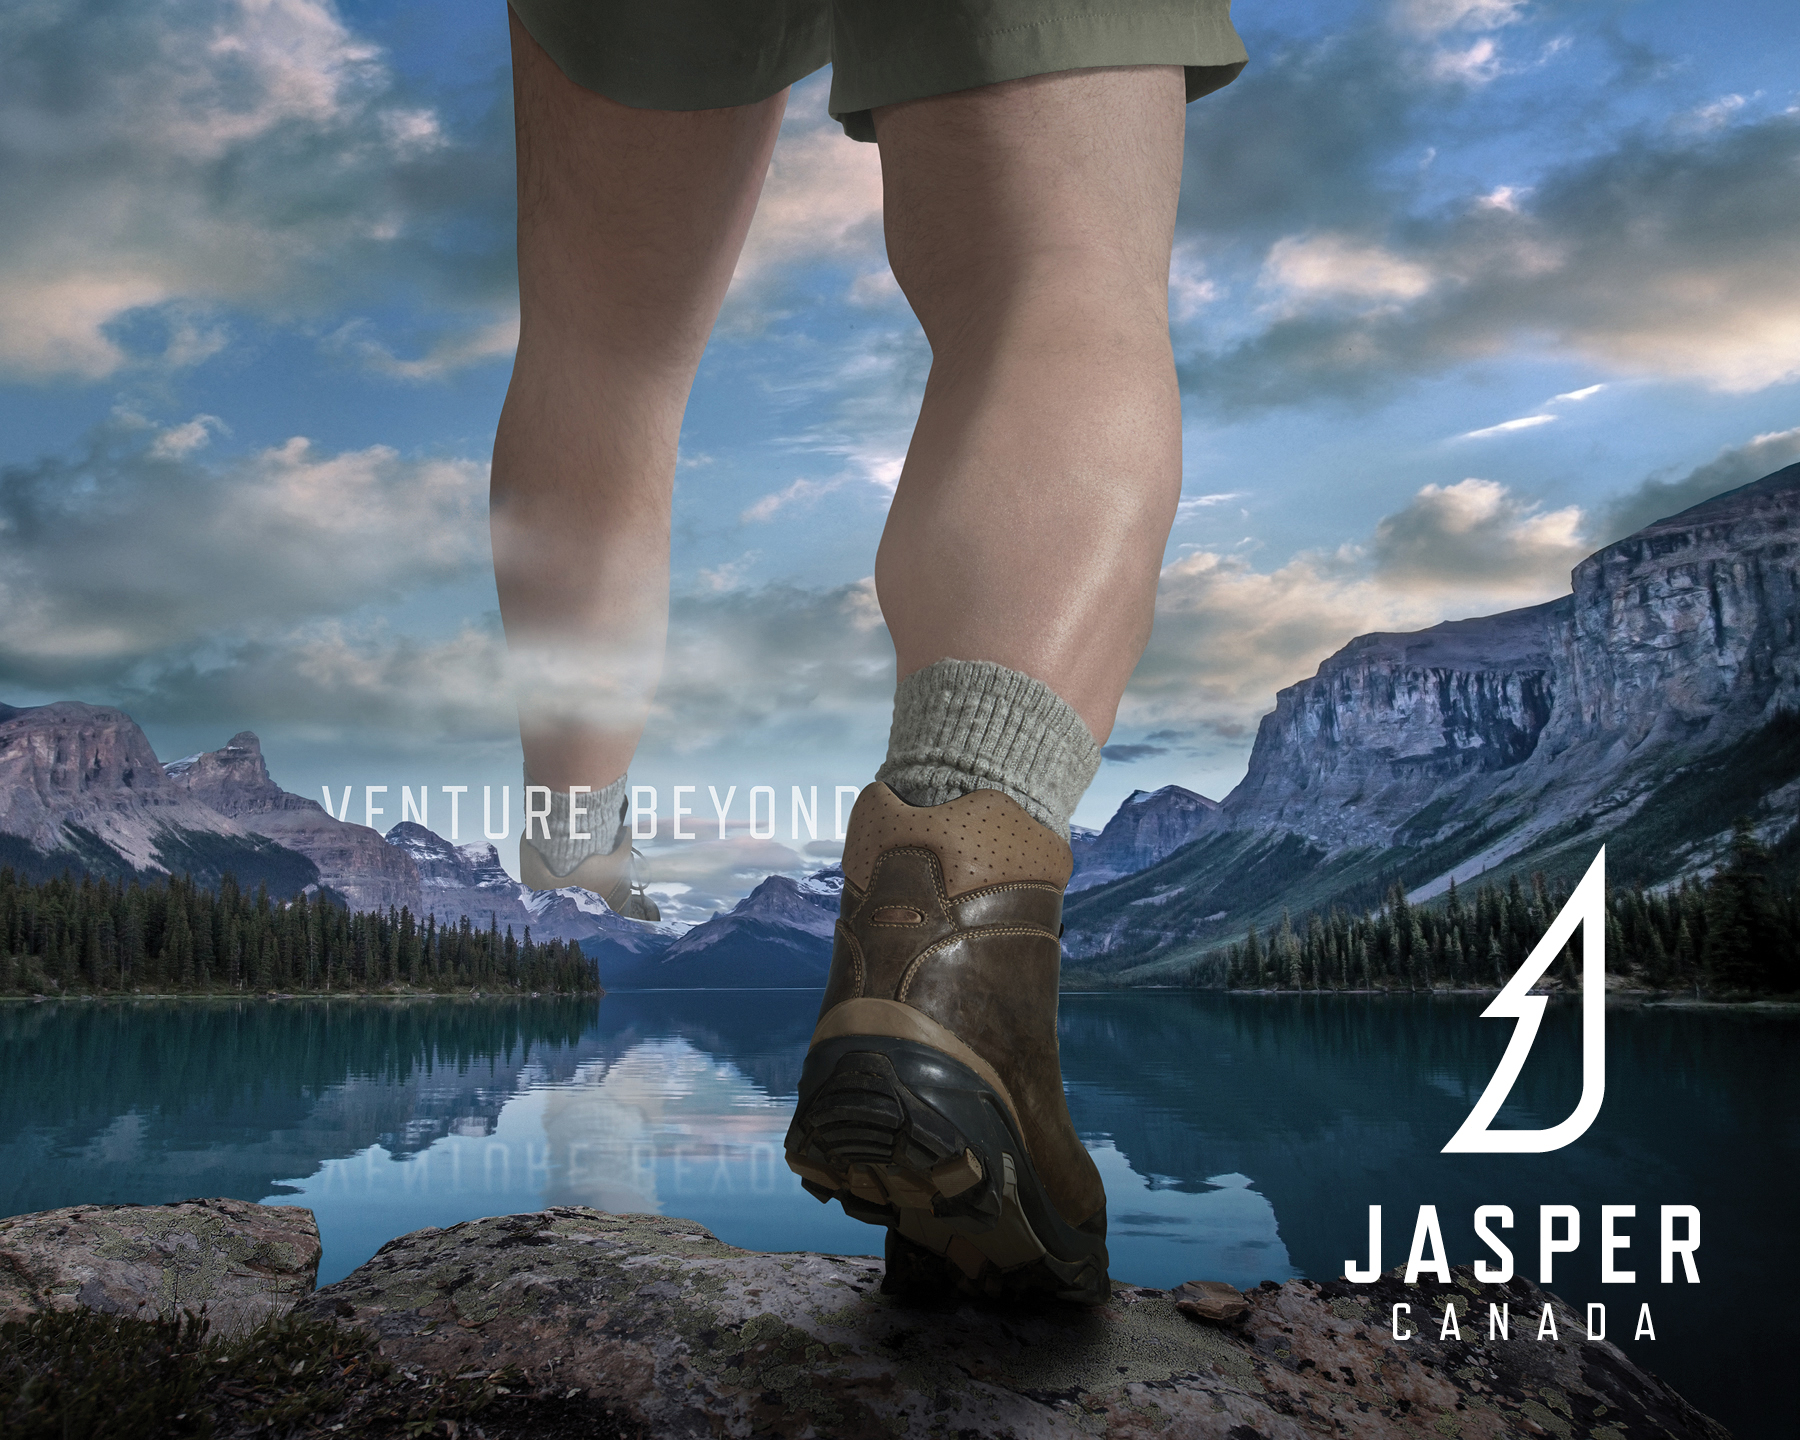 Sometimes the best experiences are out of town – even if that town is in the beautiful Rockies. On the insight that people who ventured beyond Jasper's borders had a better experience, C&B created an entirely new brand platform for the tourism board, which has since been adopted by other partners in the Alberta destination.